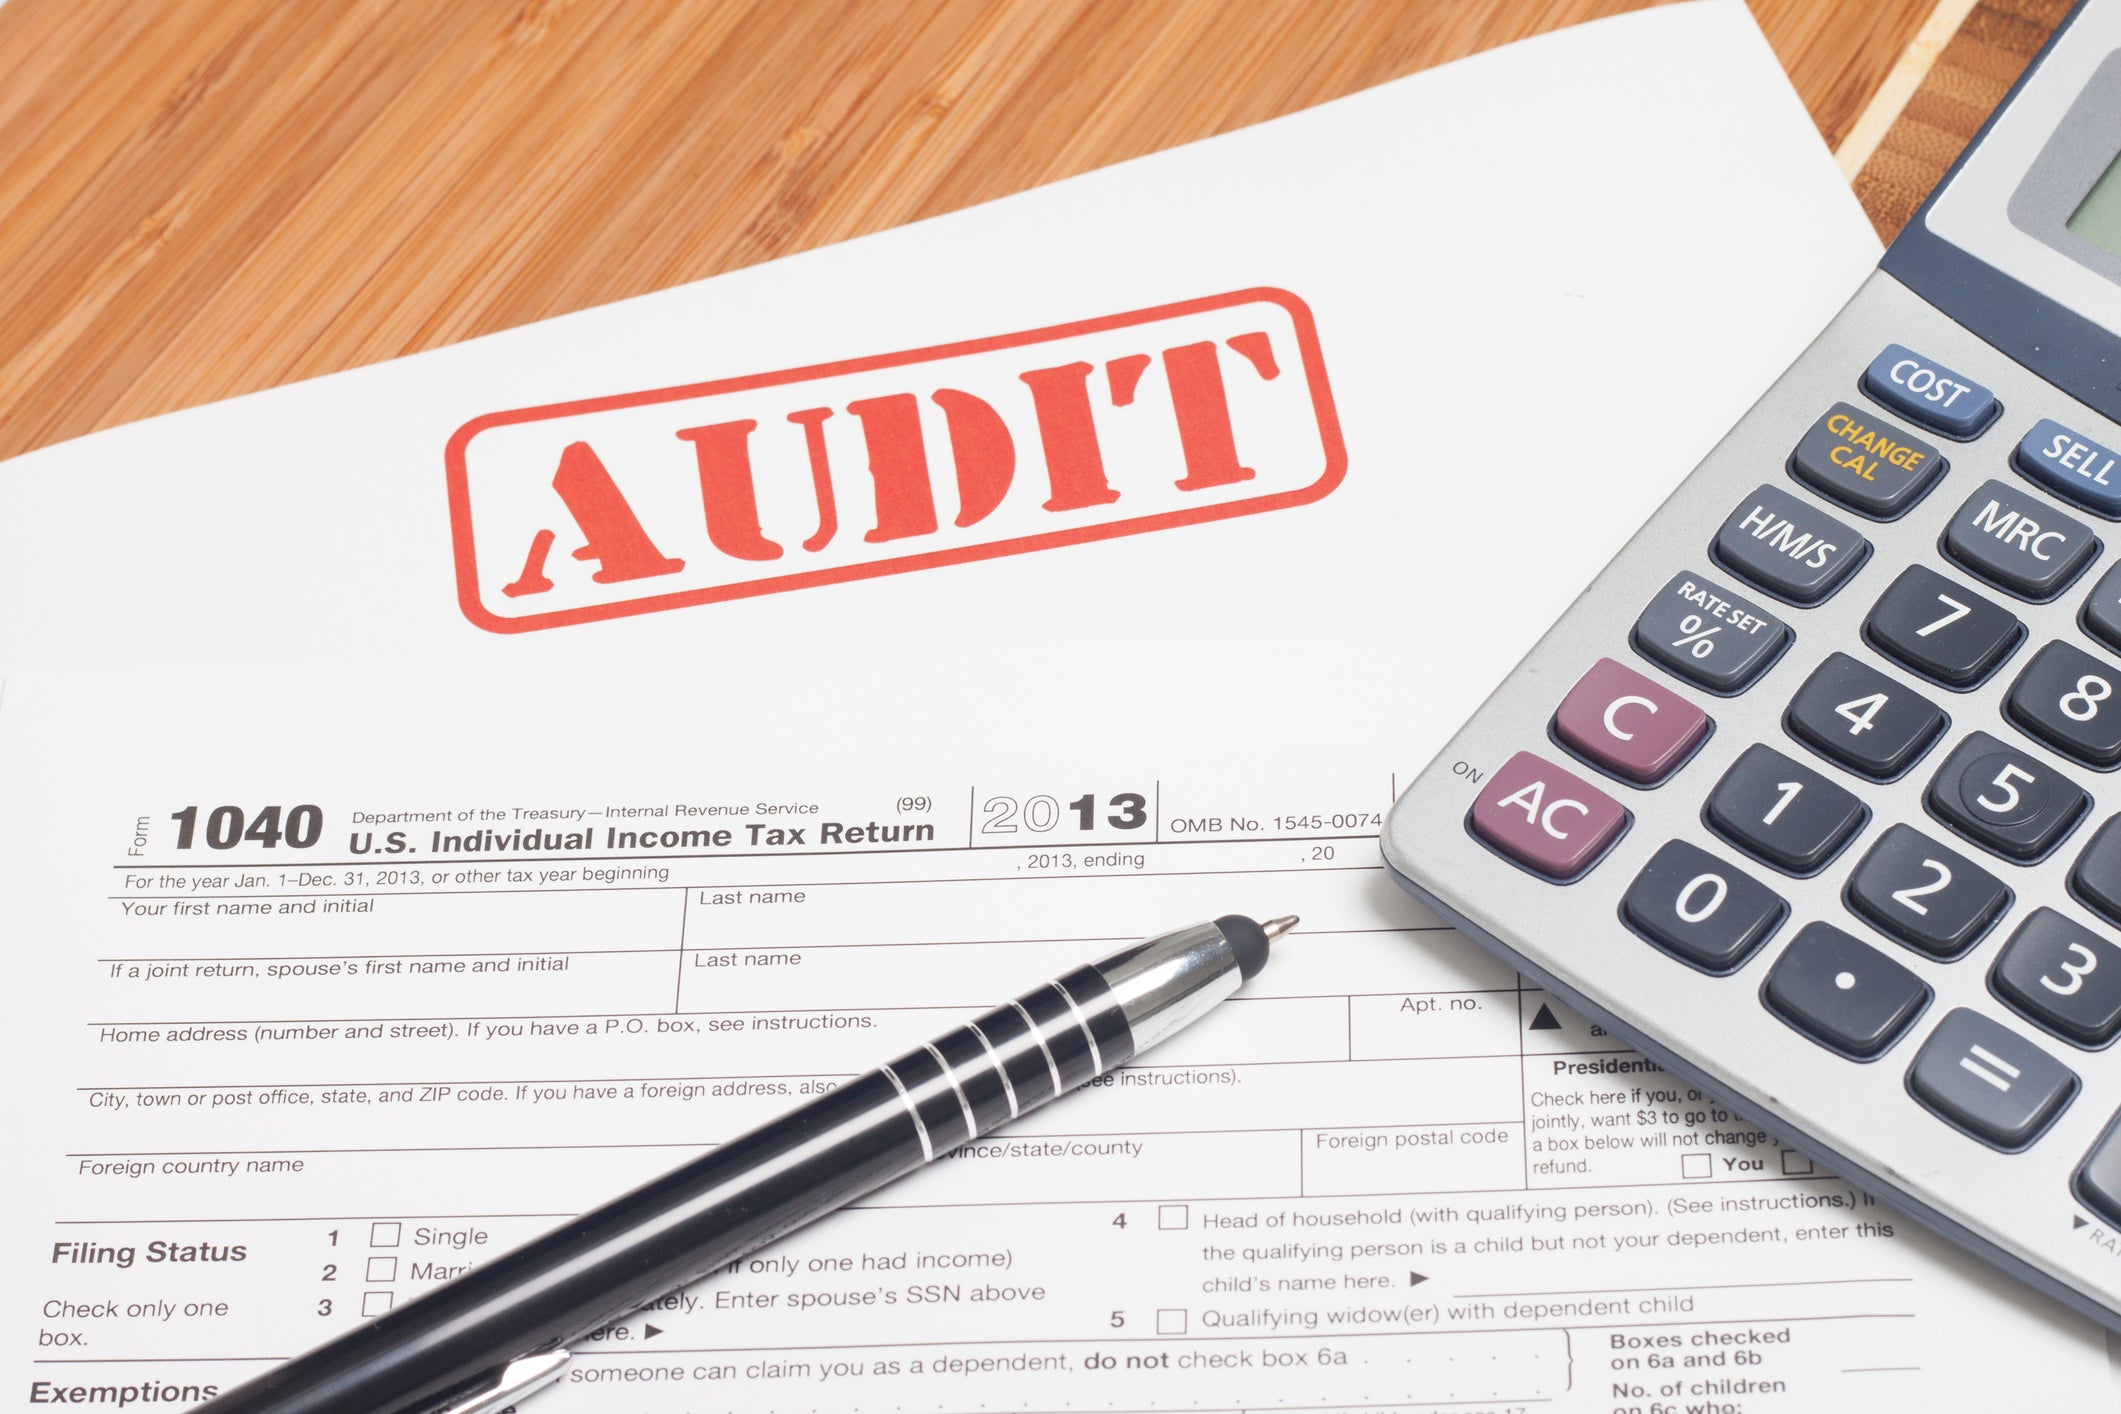 3 IRS Red Flags That Could Lead to a Tax Audit -- The Motley Fool